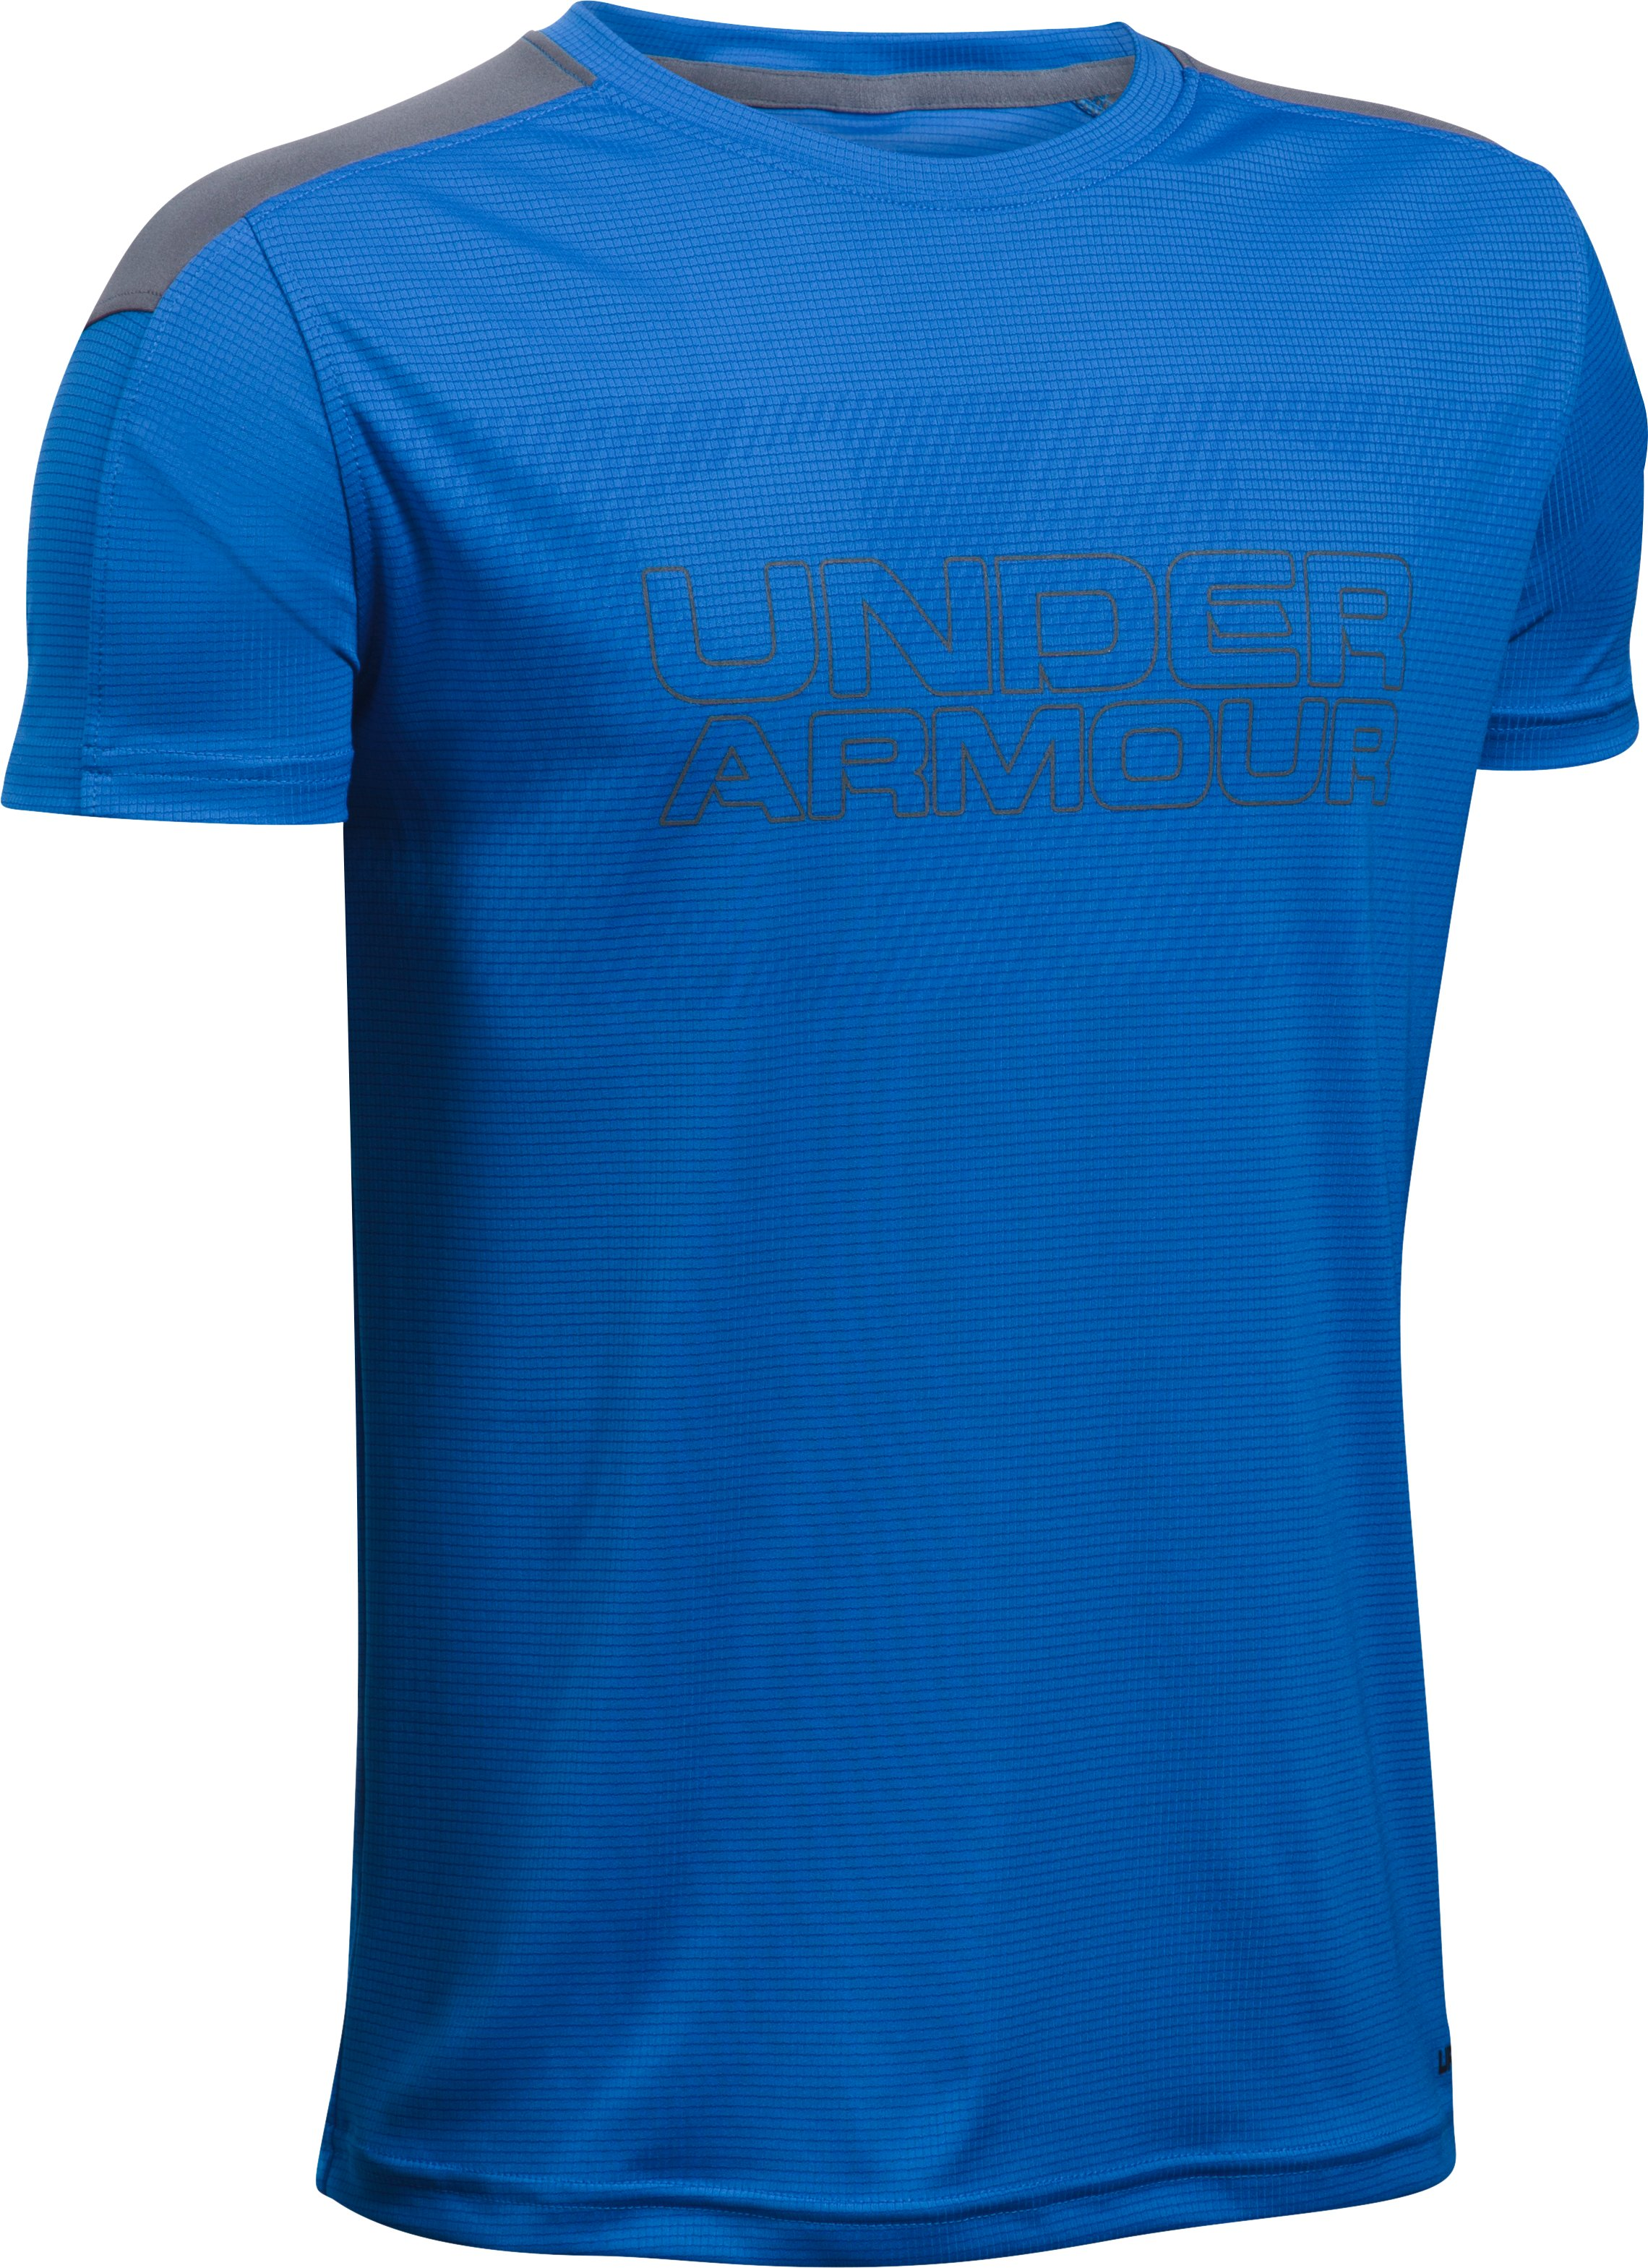 Boys' UA Activate Short Sleeve T-Shirt, ULTRA BLUE, undefined